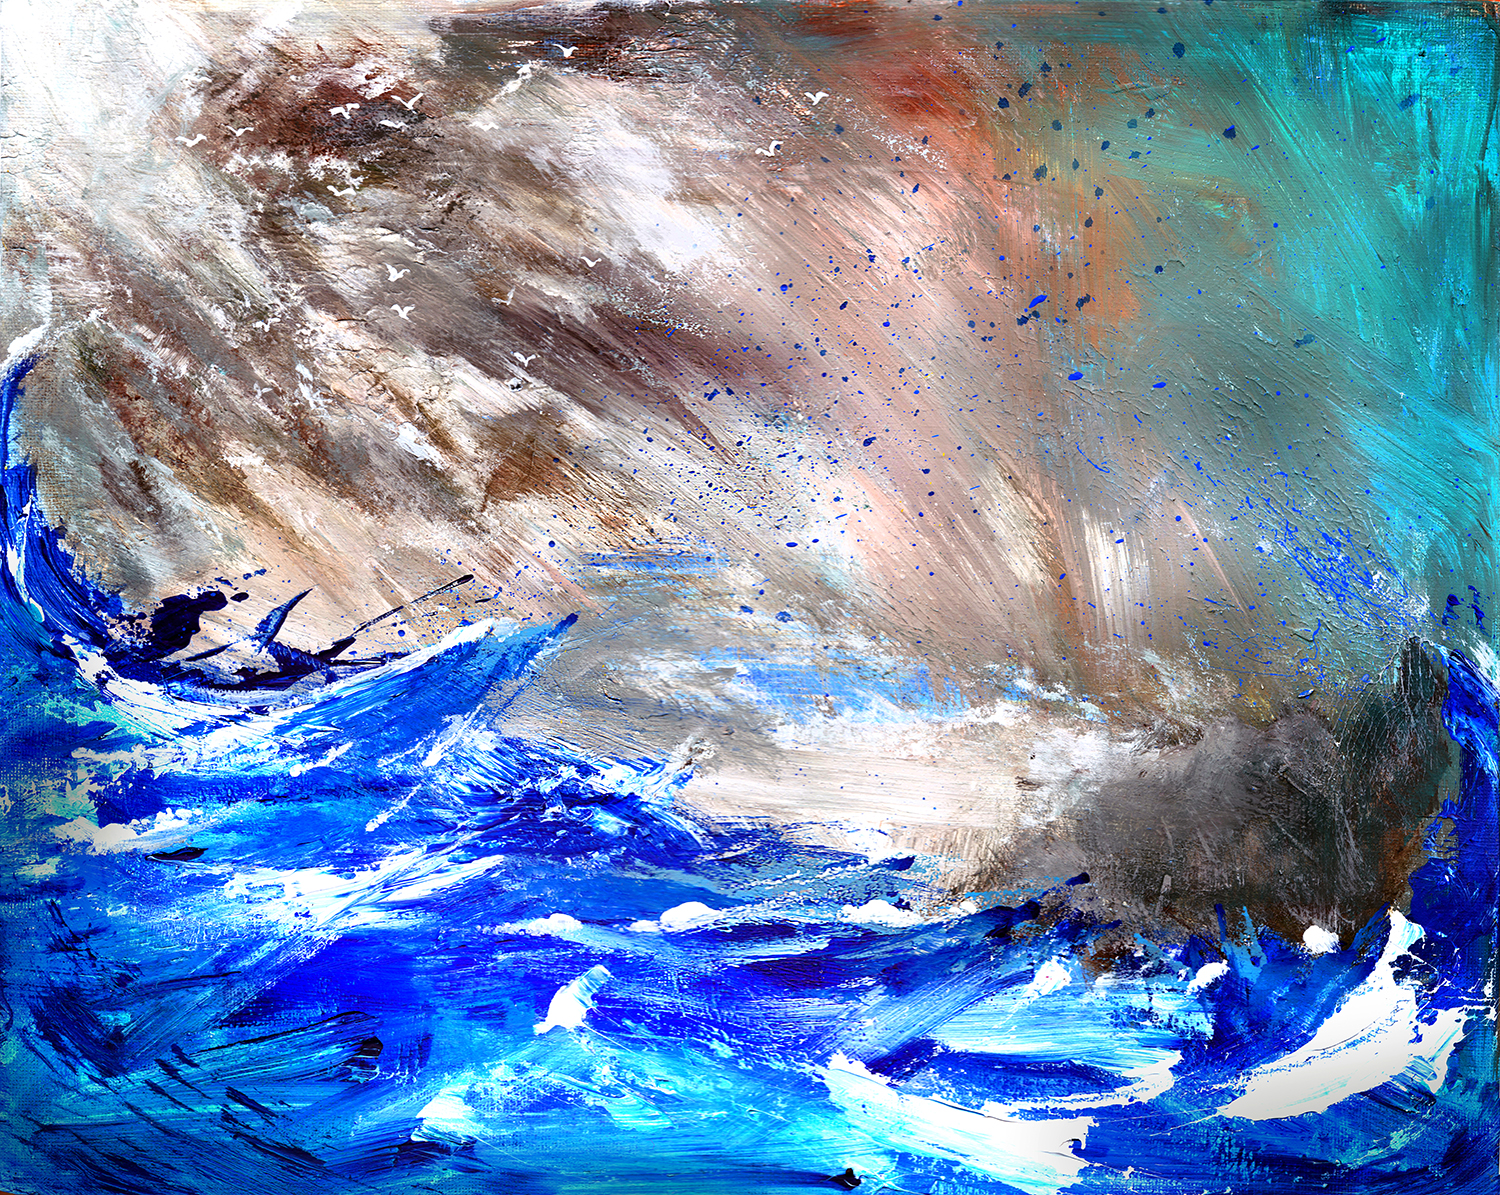 acrylic painting of storm at sea by artist Crystal Smith